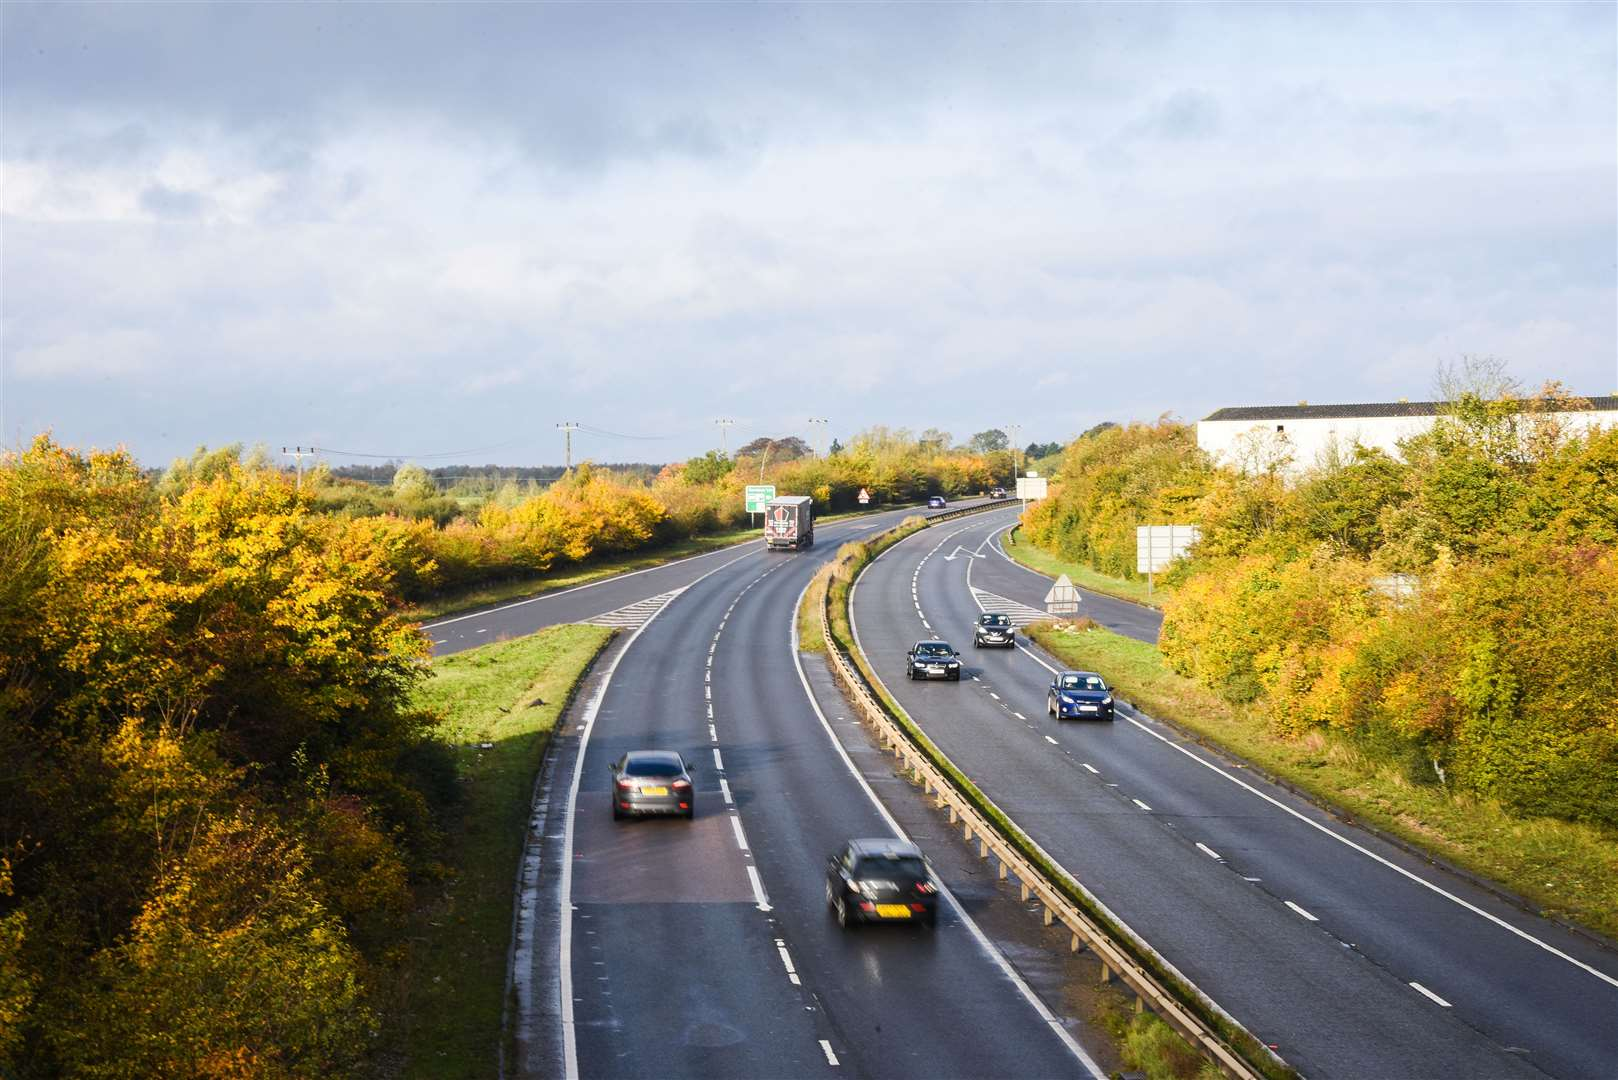 The proposed depot is intended to help keep key routes like the A47 open.